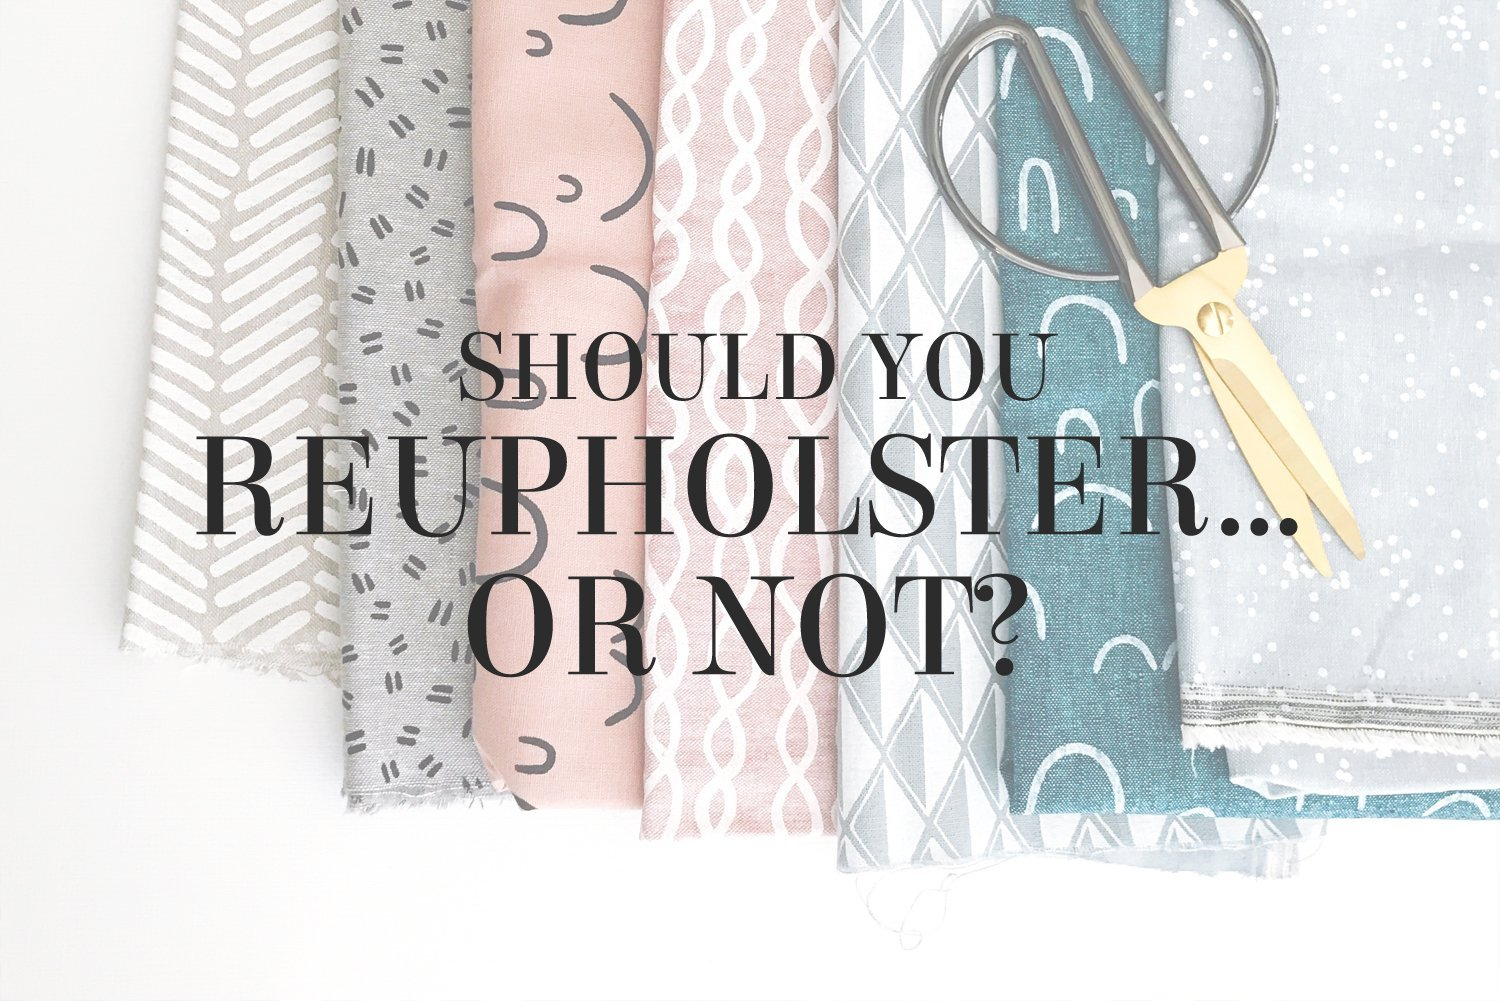 Should you reupholster...or not? Interior designer Lesley Myrick has a few tips to help you decide if reupholstery is worth the investment.